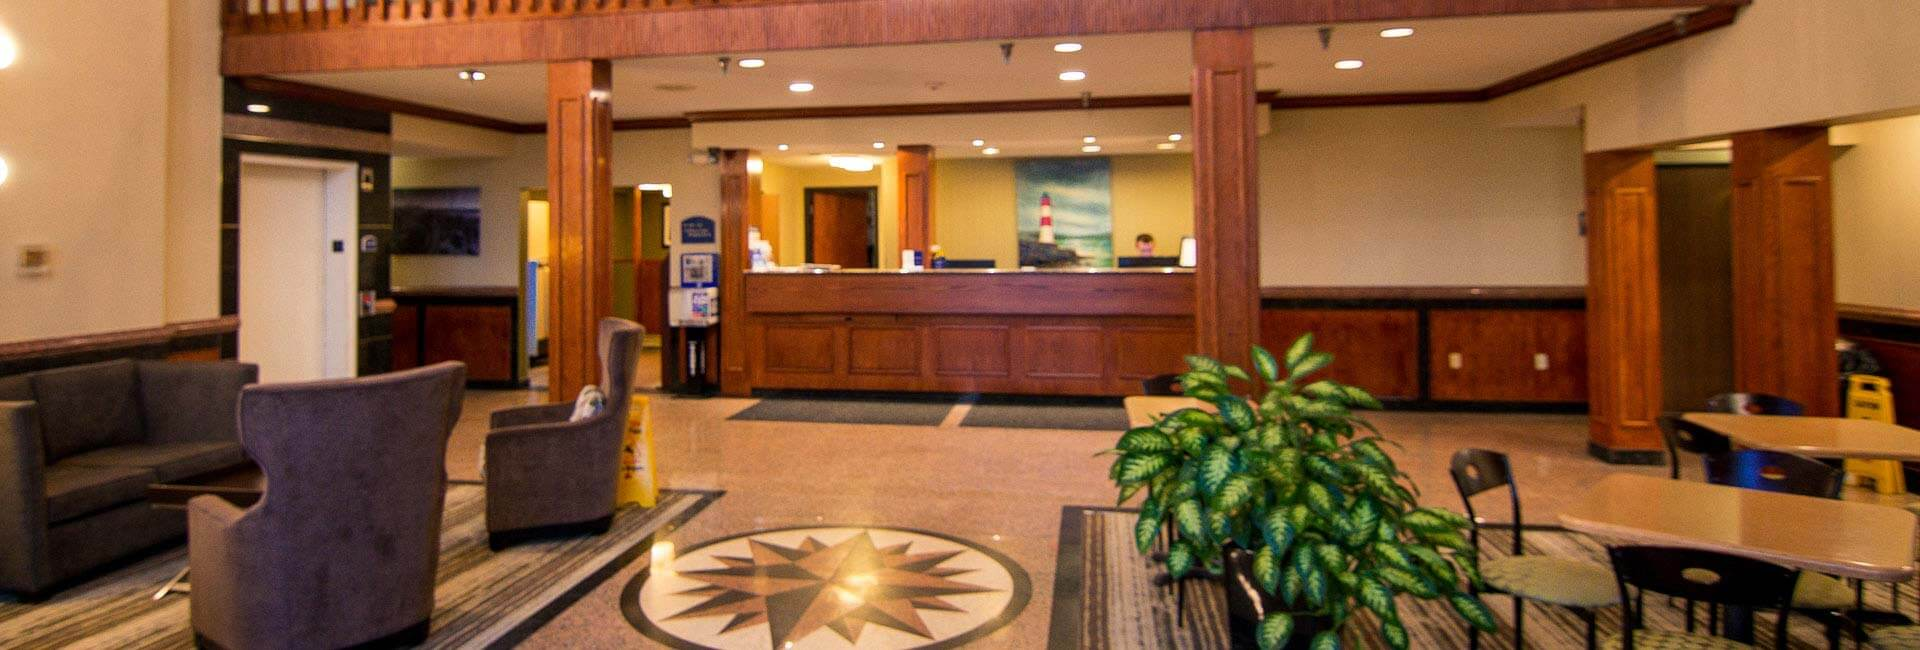 Best Western Airport Inn Hotel at Warwick